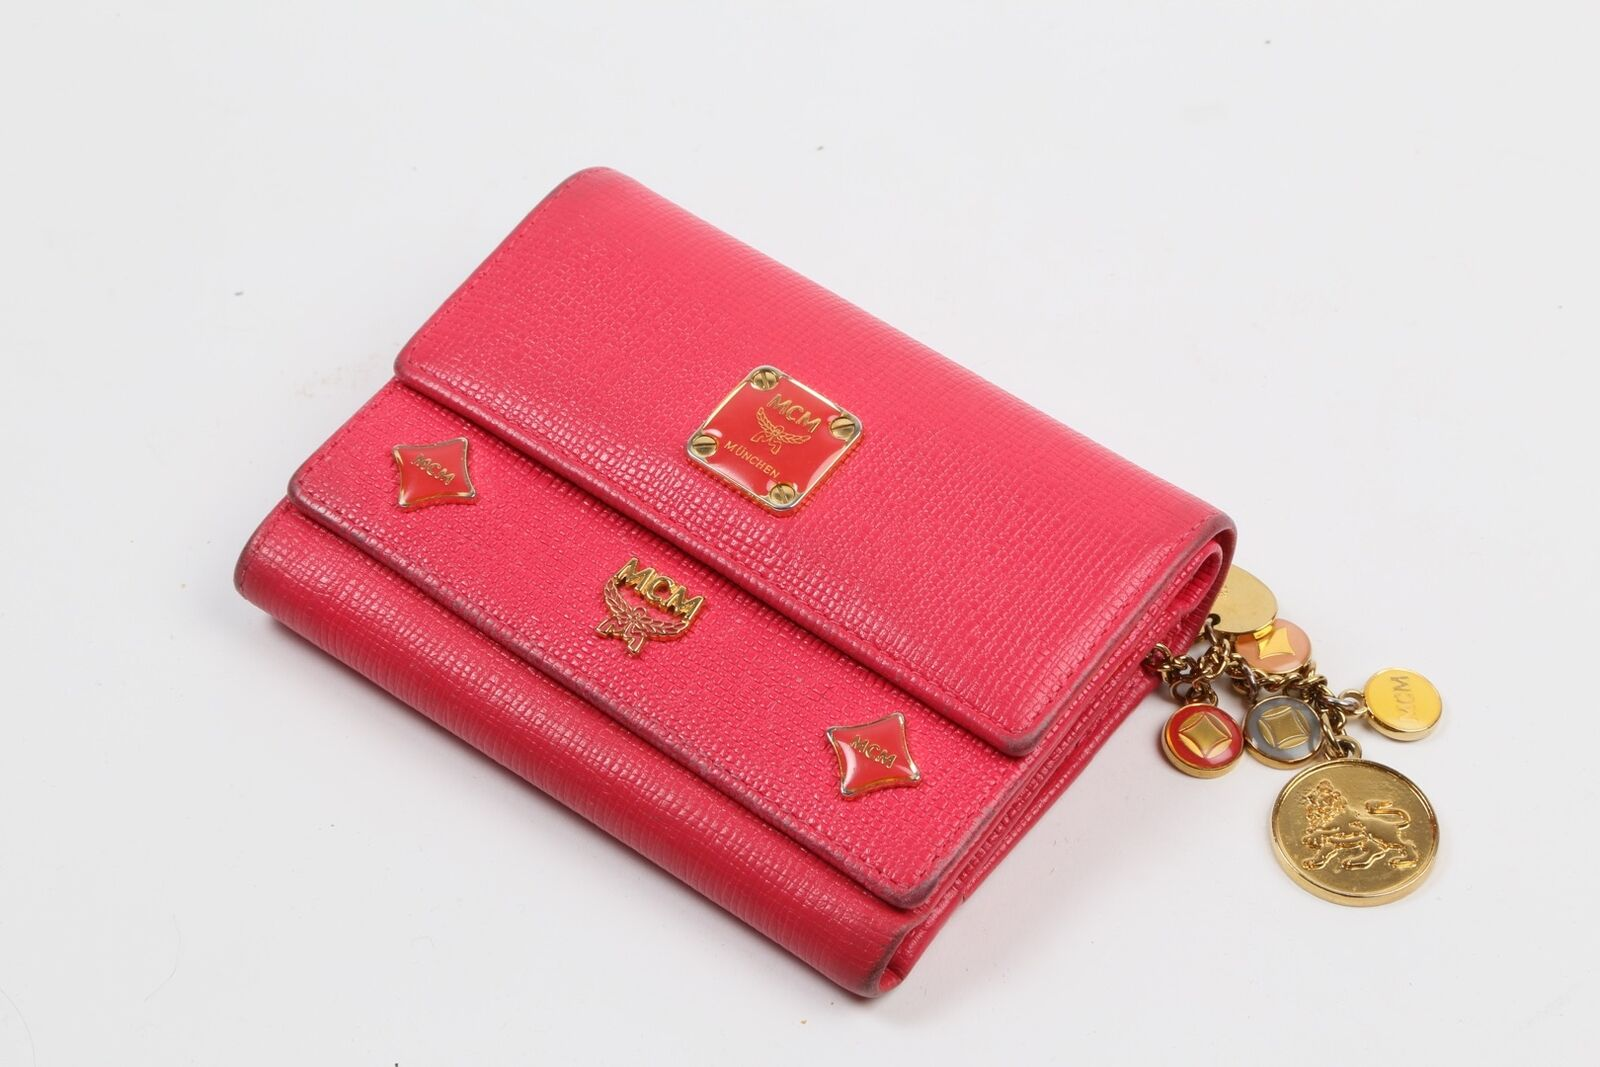 MCM Pink Leather Trifold Wallet